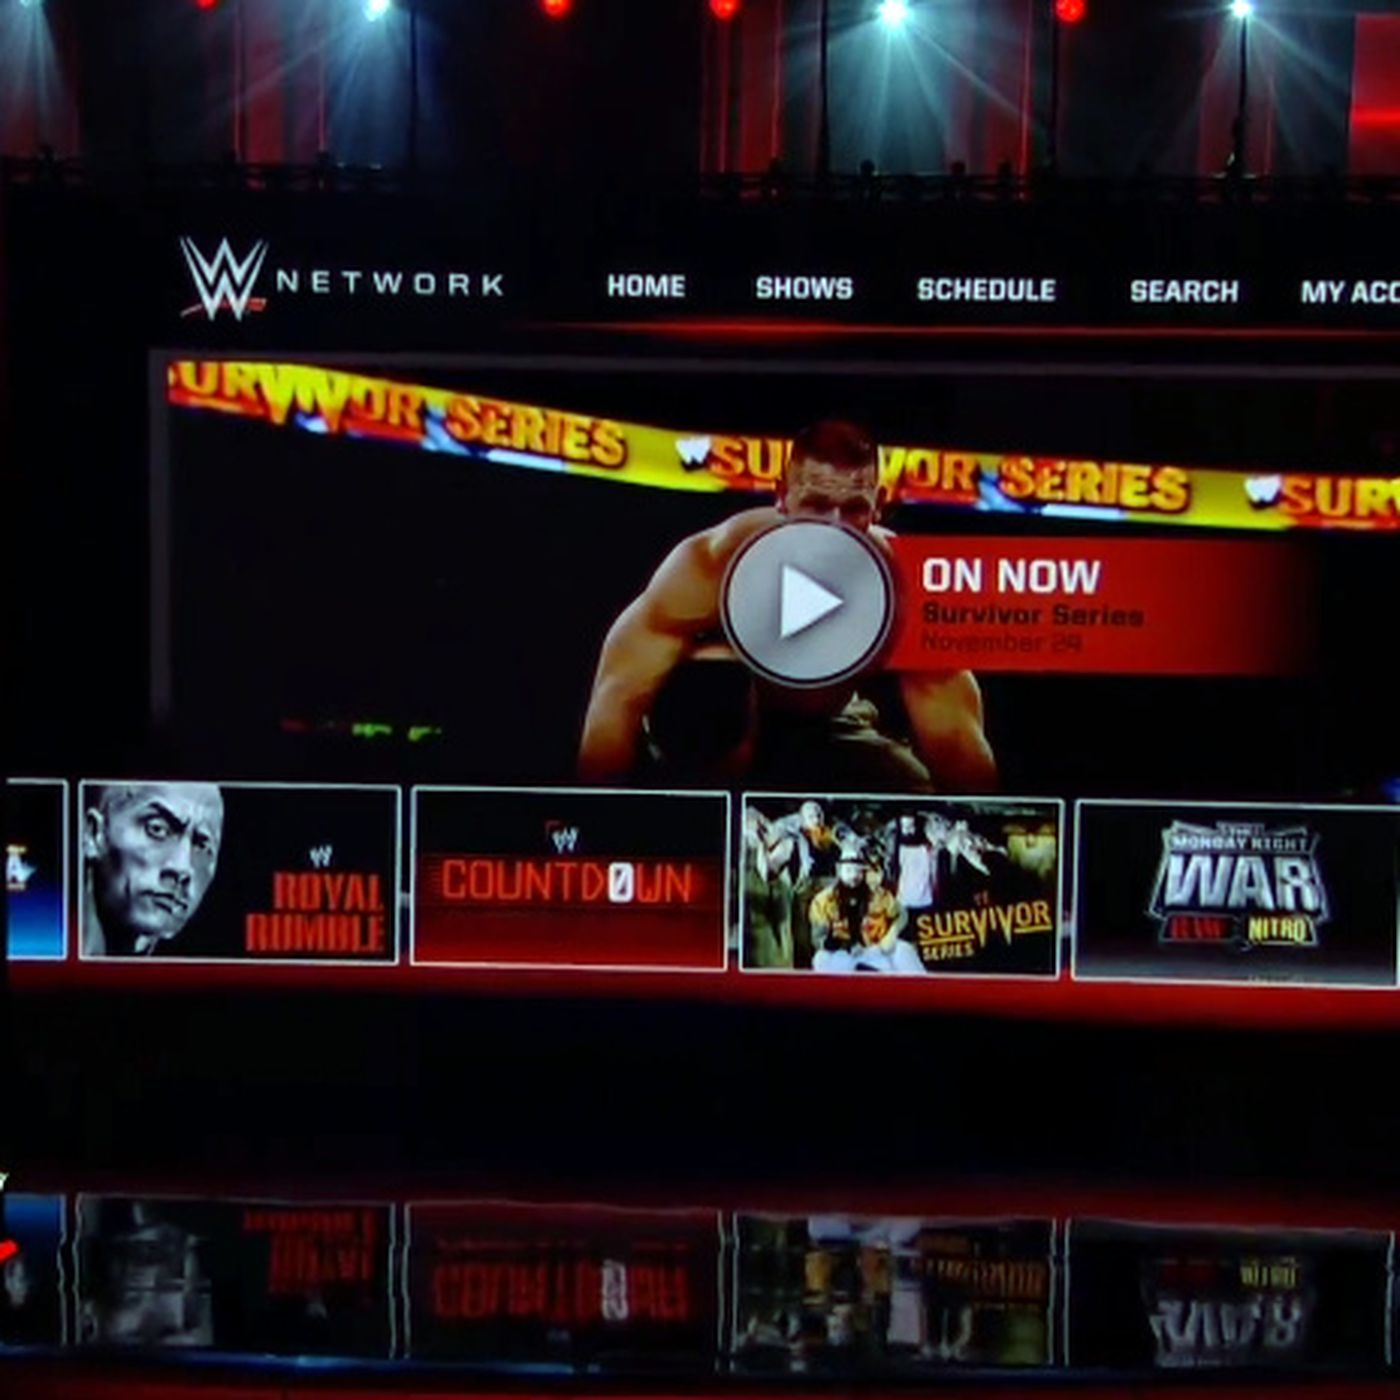 Sign in network password wwe Contact Us